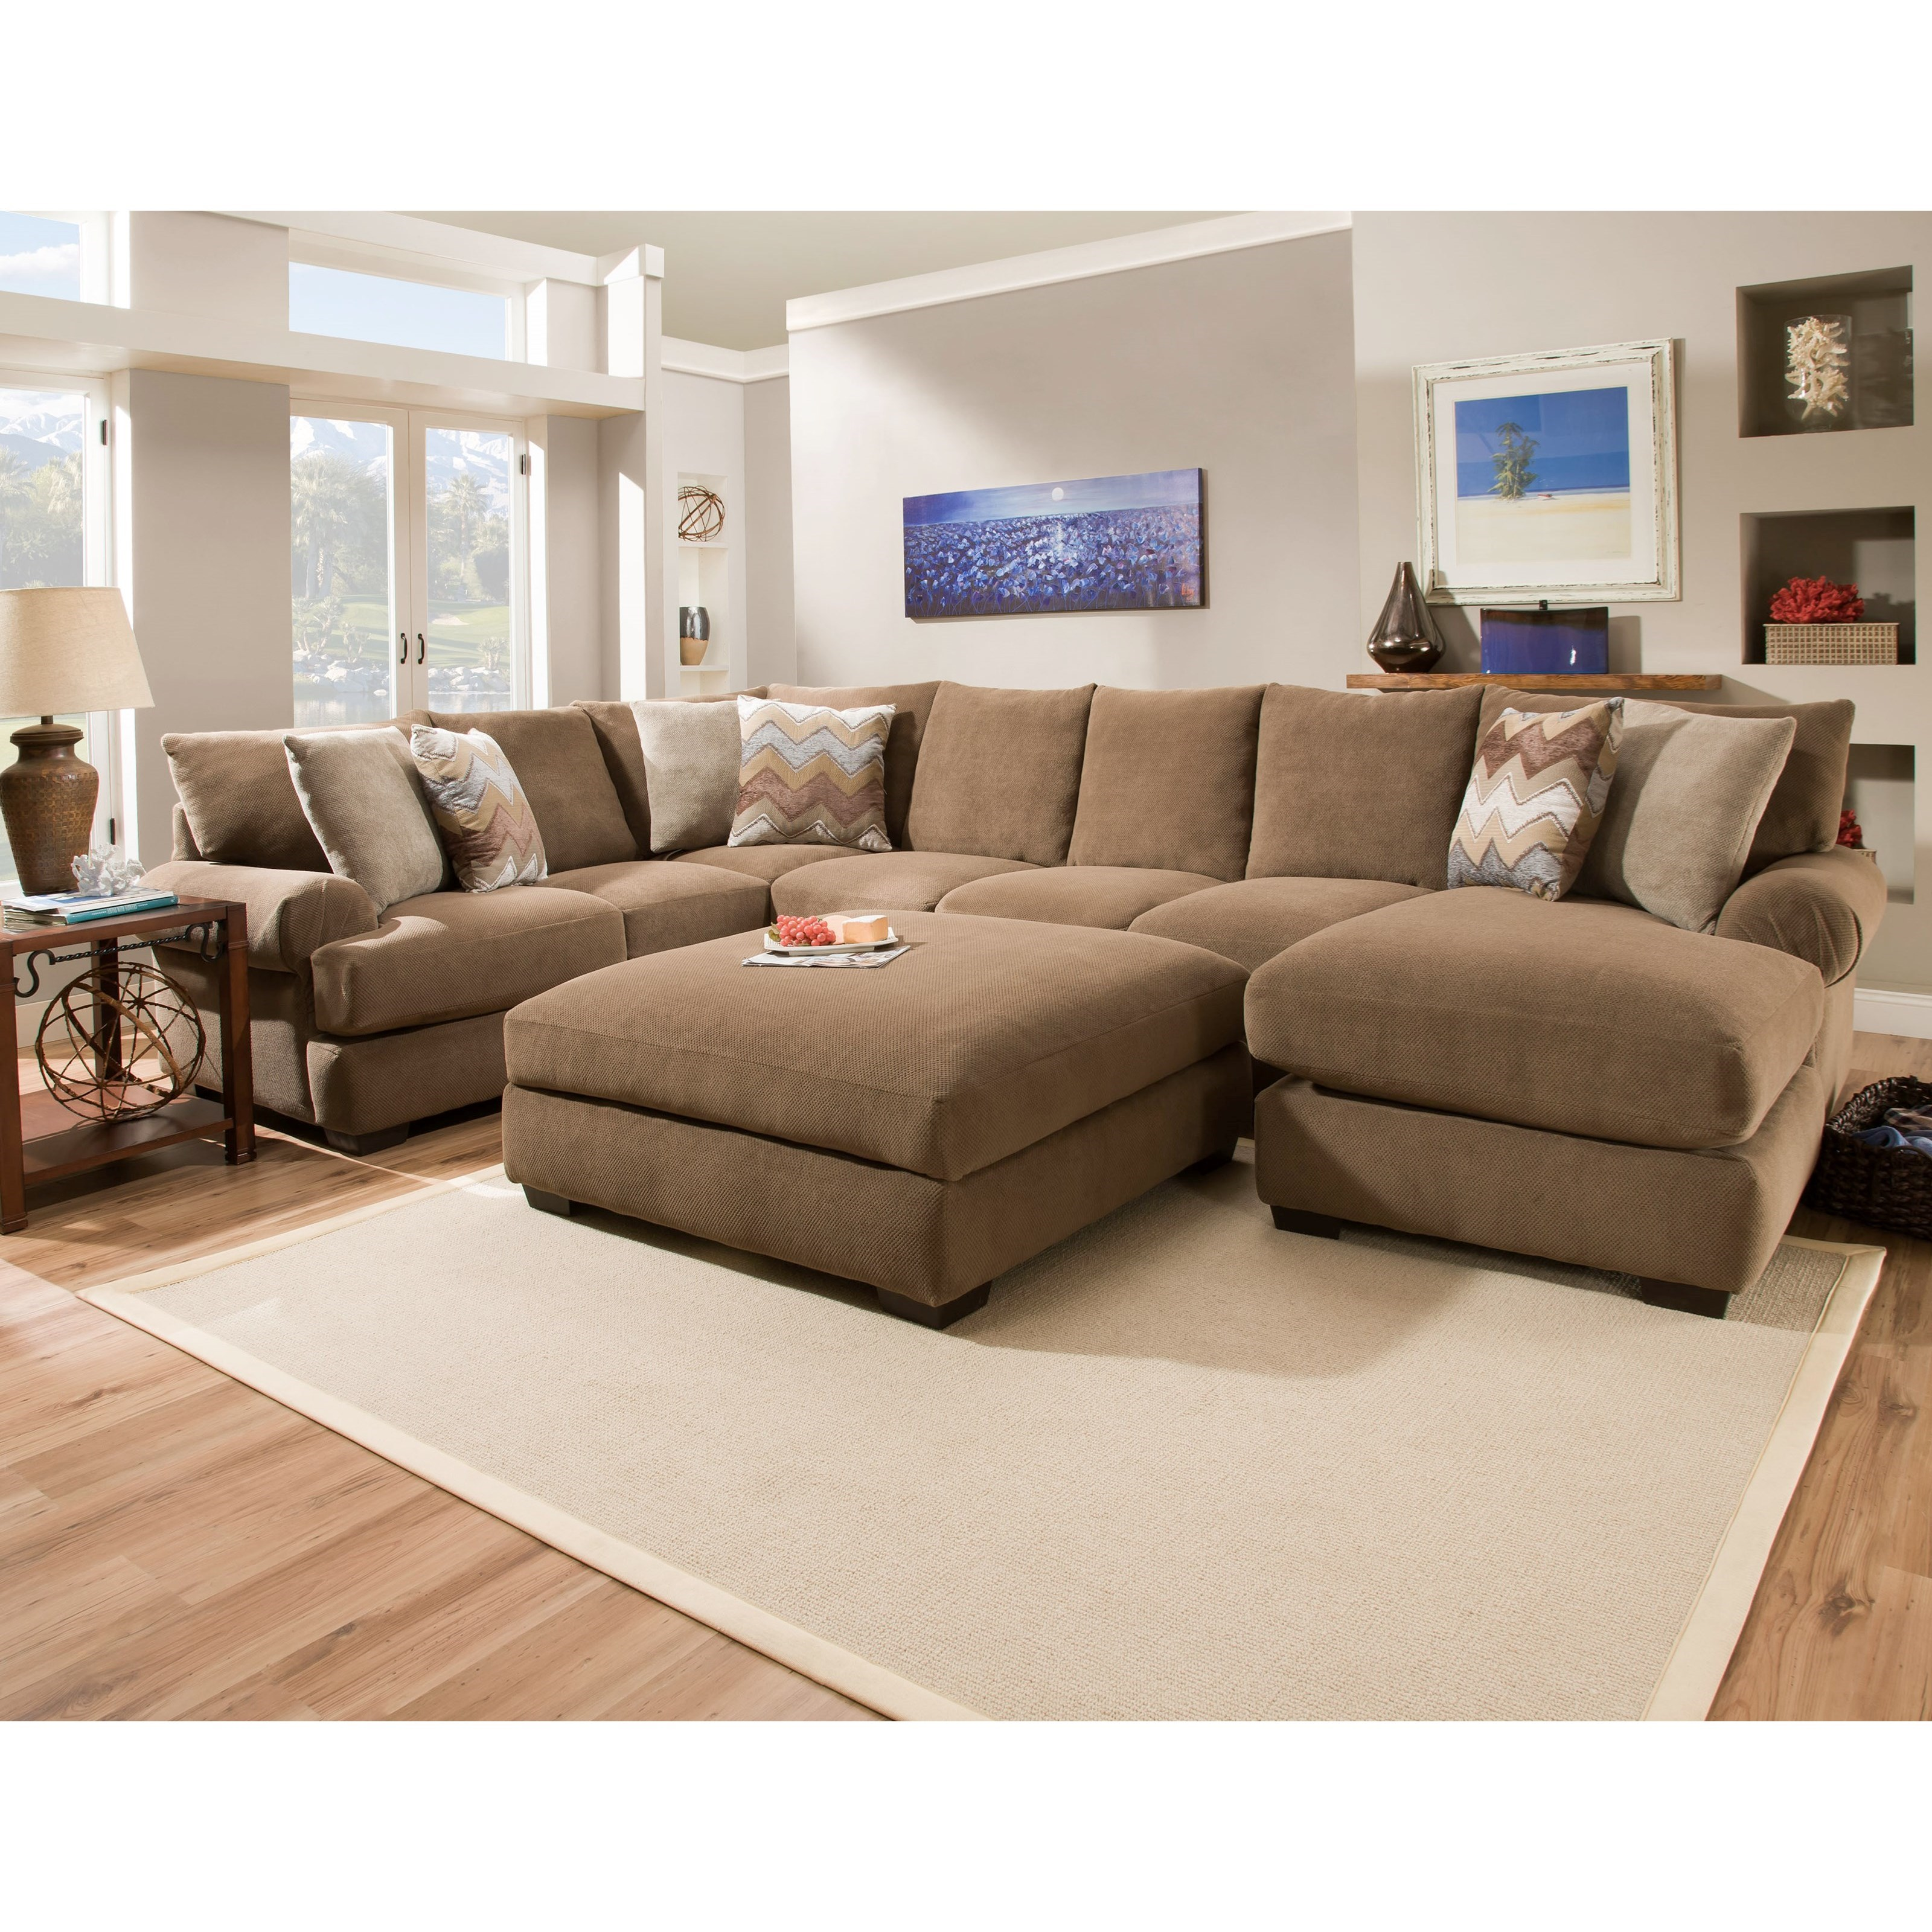 Marlo Furniture Living Room Sets – Modern House